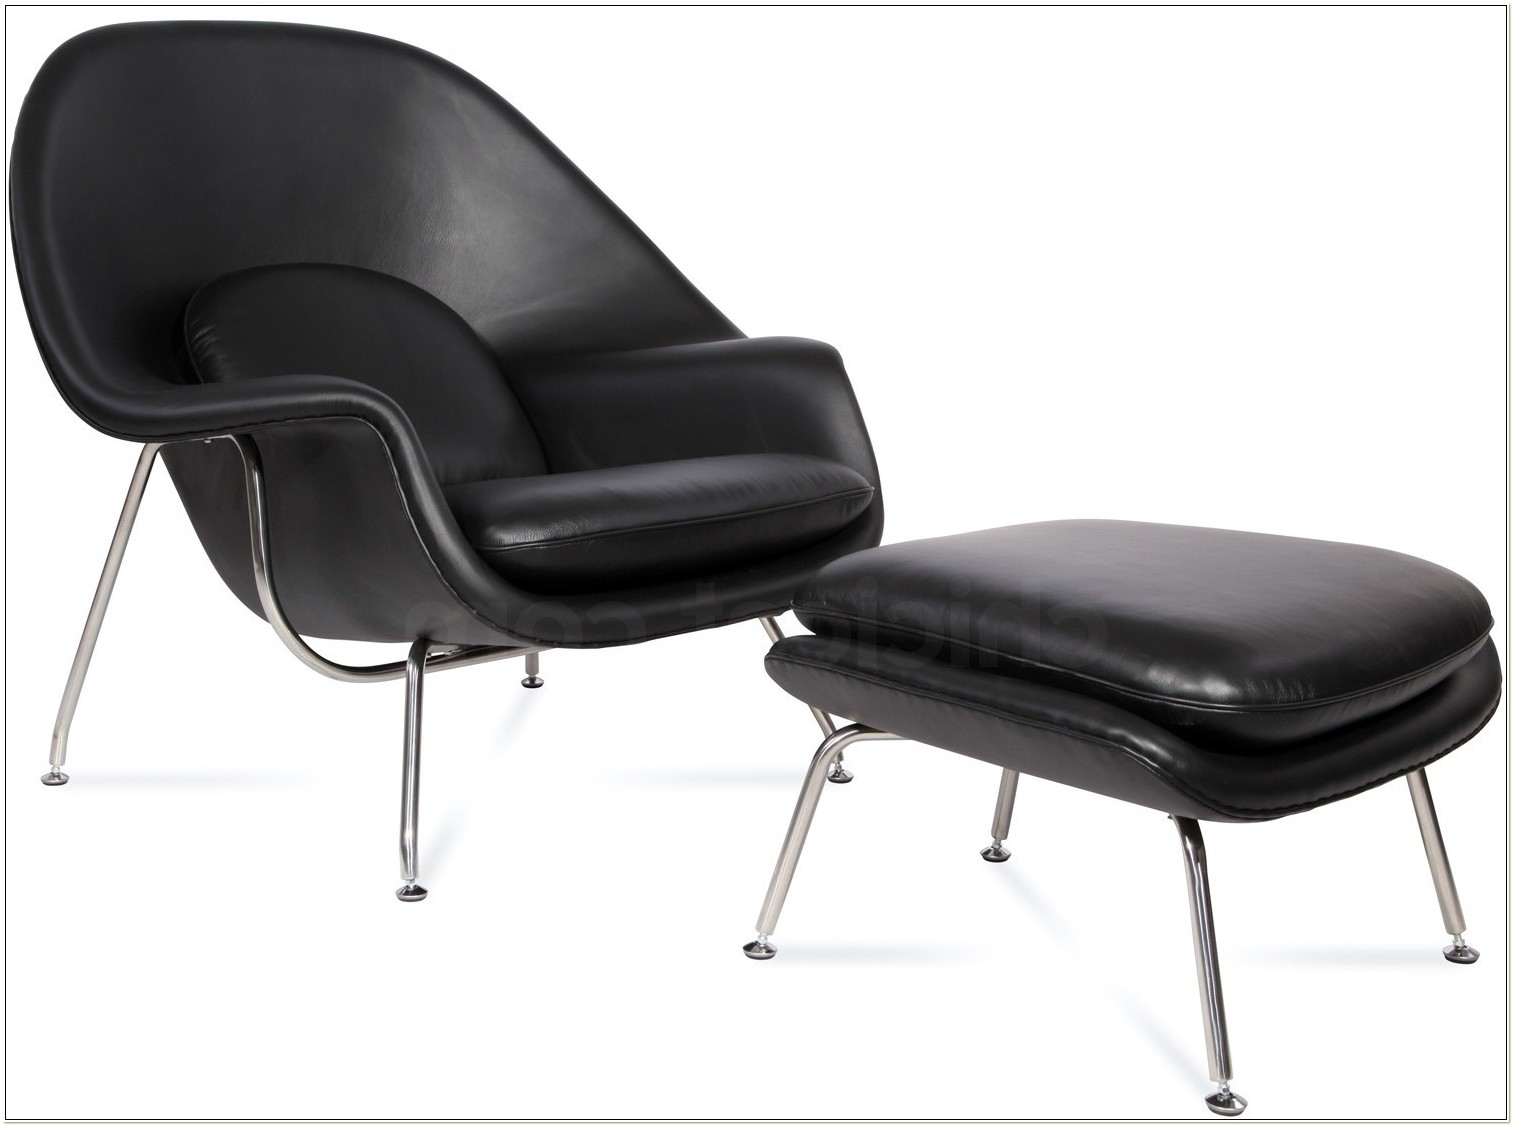 Eero Saarinen Womb Chair Replica